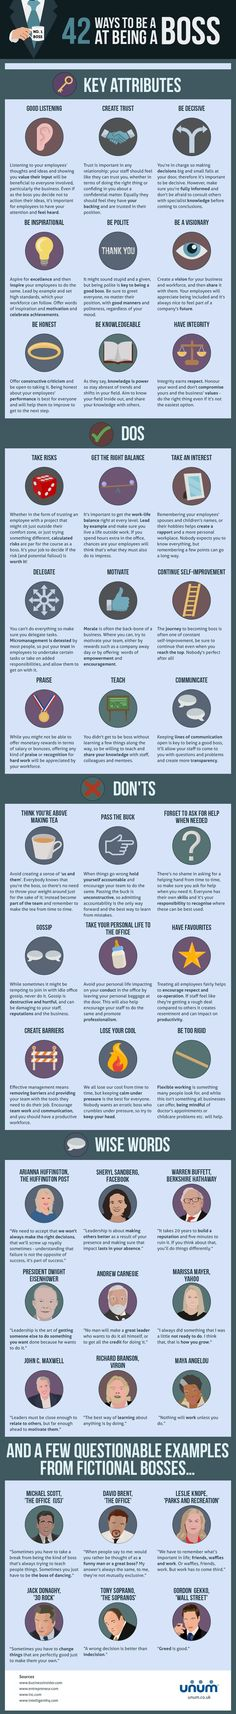 Starting a New #Business - 42 Tips to Become a Great Boss #Infographic #Startup